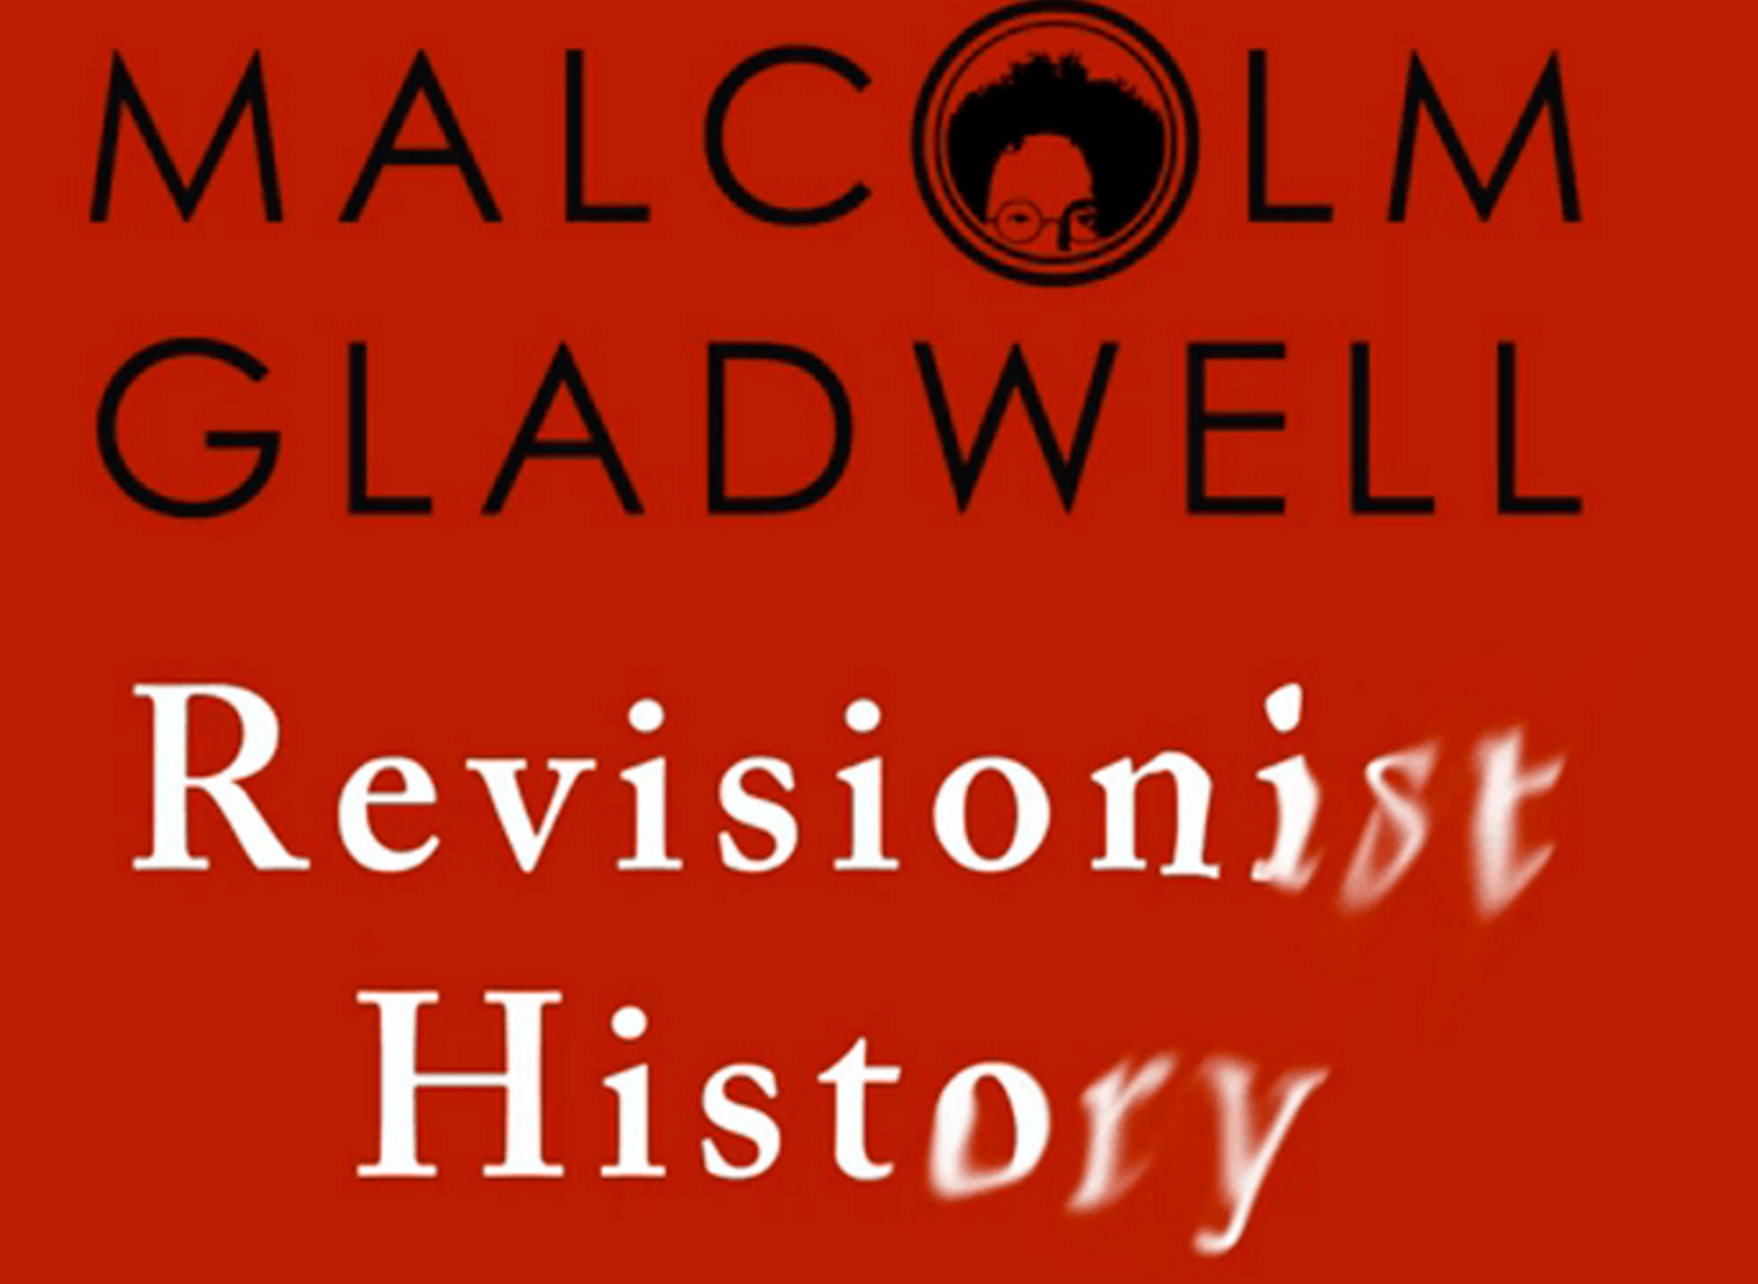 http://revisionisthistory.com/